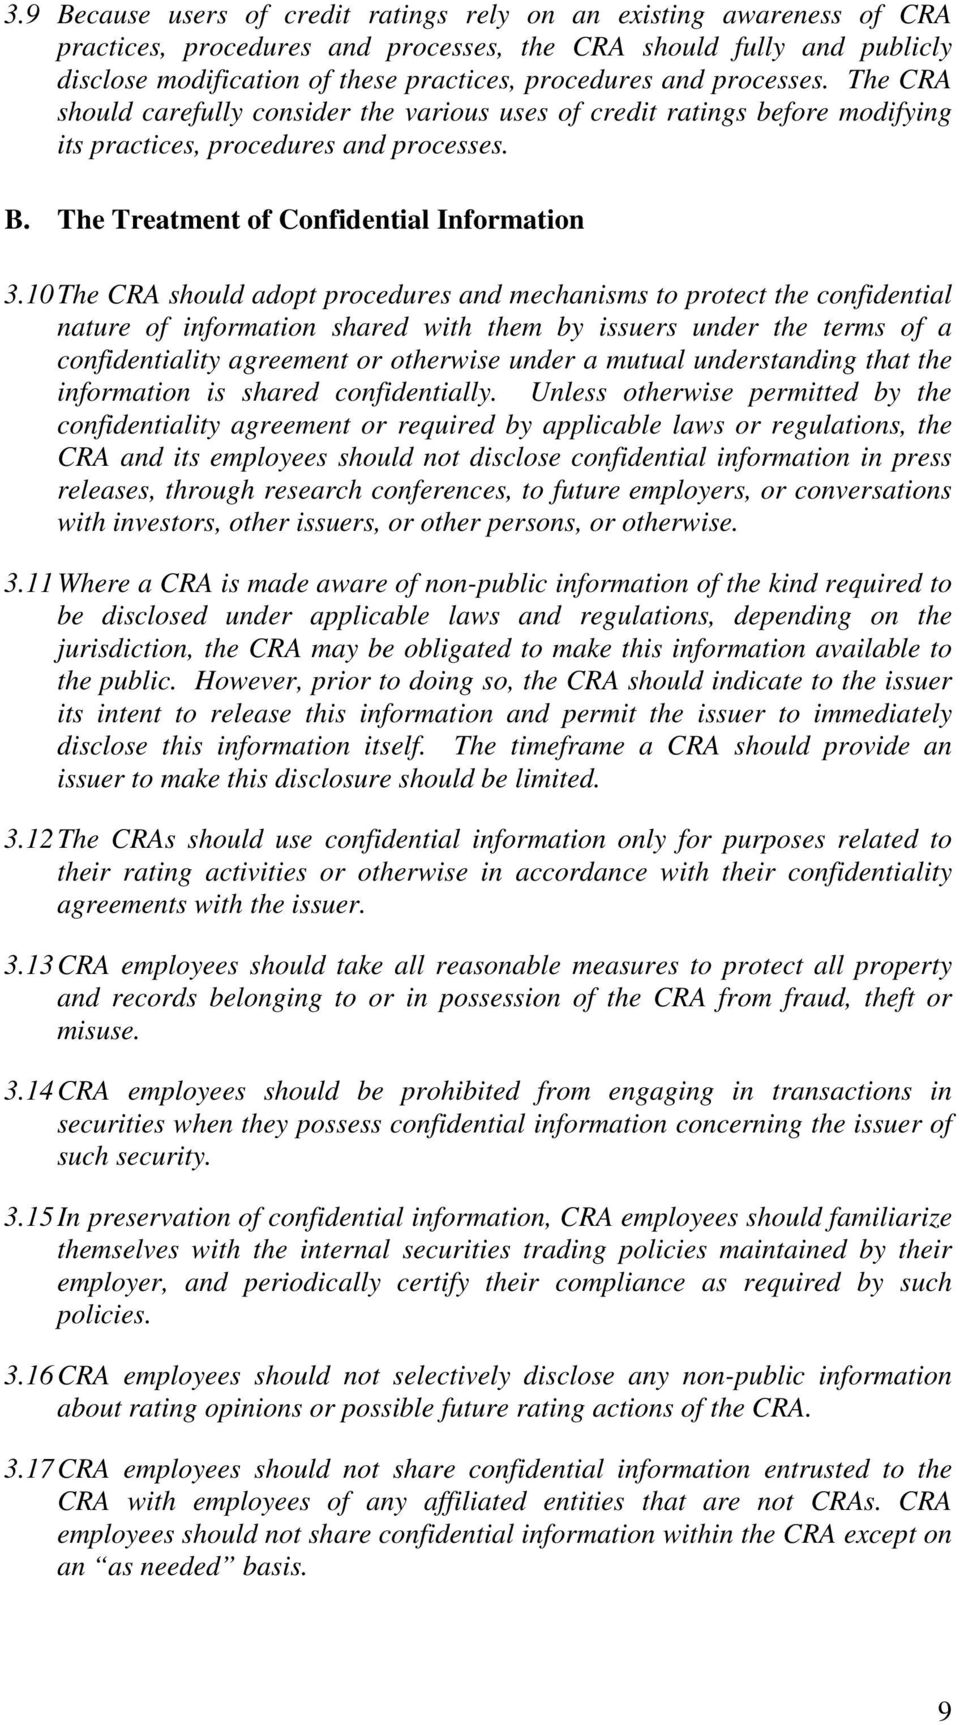 10The CRA should adopt procedures and mechanisms to protect the confidential nature of information shared with them by issuers under the terms of a confidentiality agreement or otherwise under a